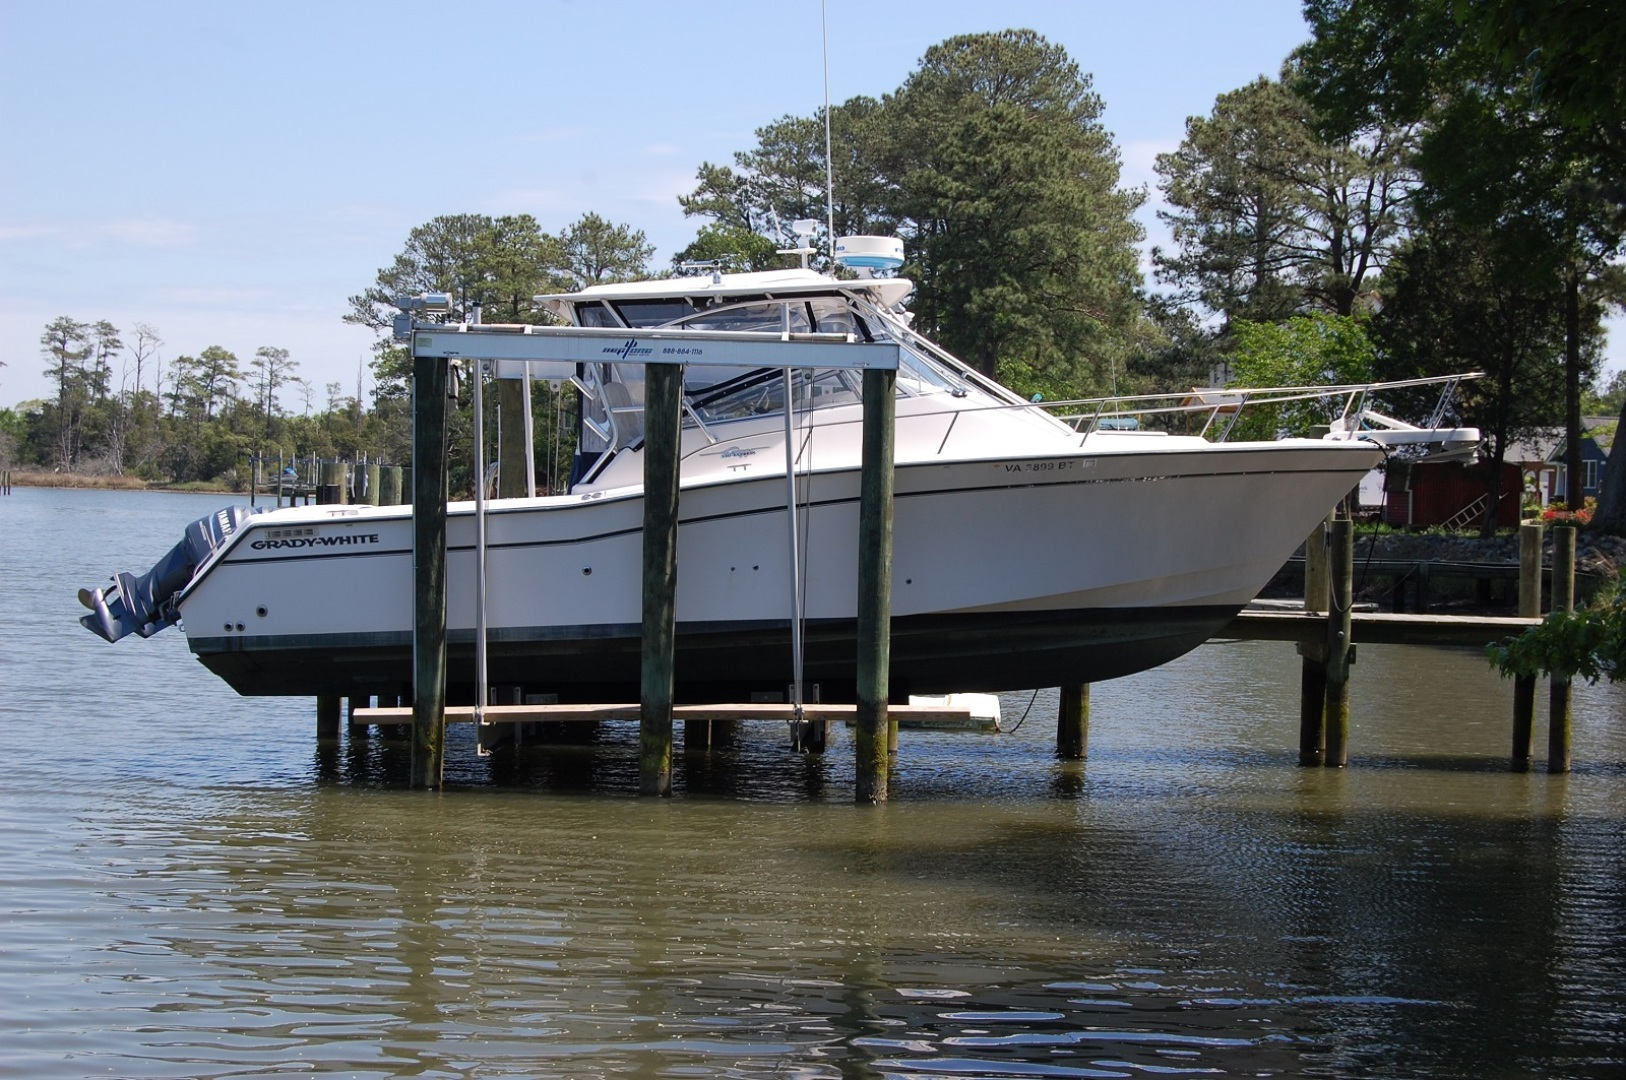 List of Grady White Boats for Sale from $50k to $100k - Result 1